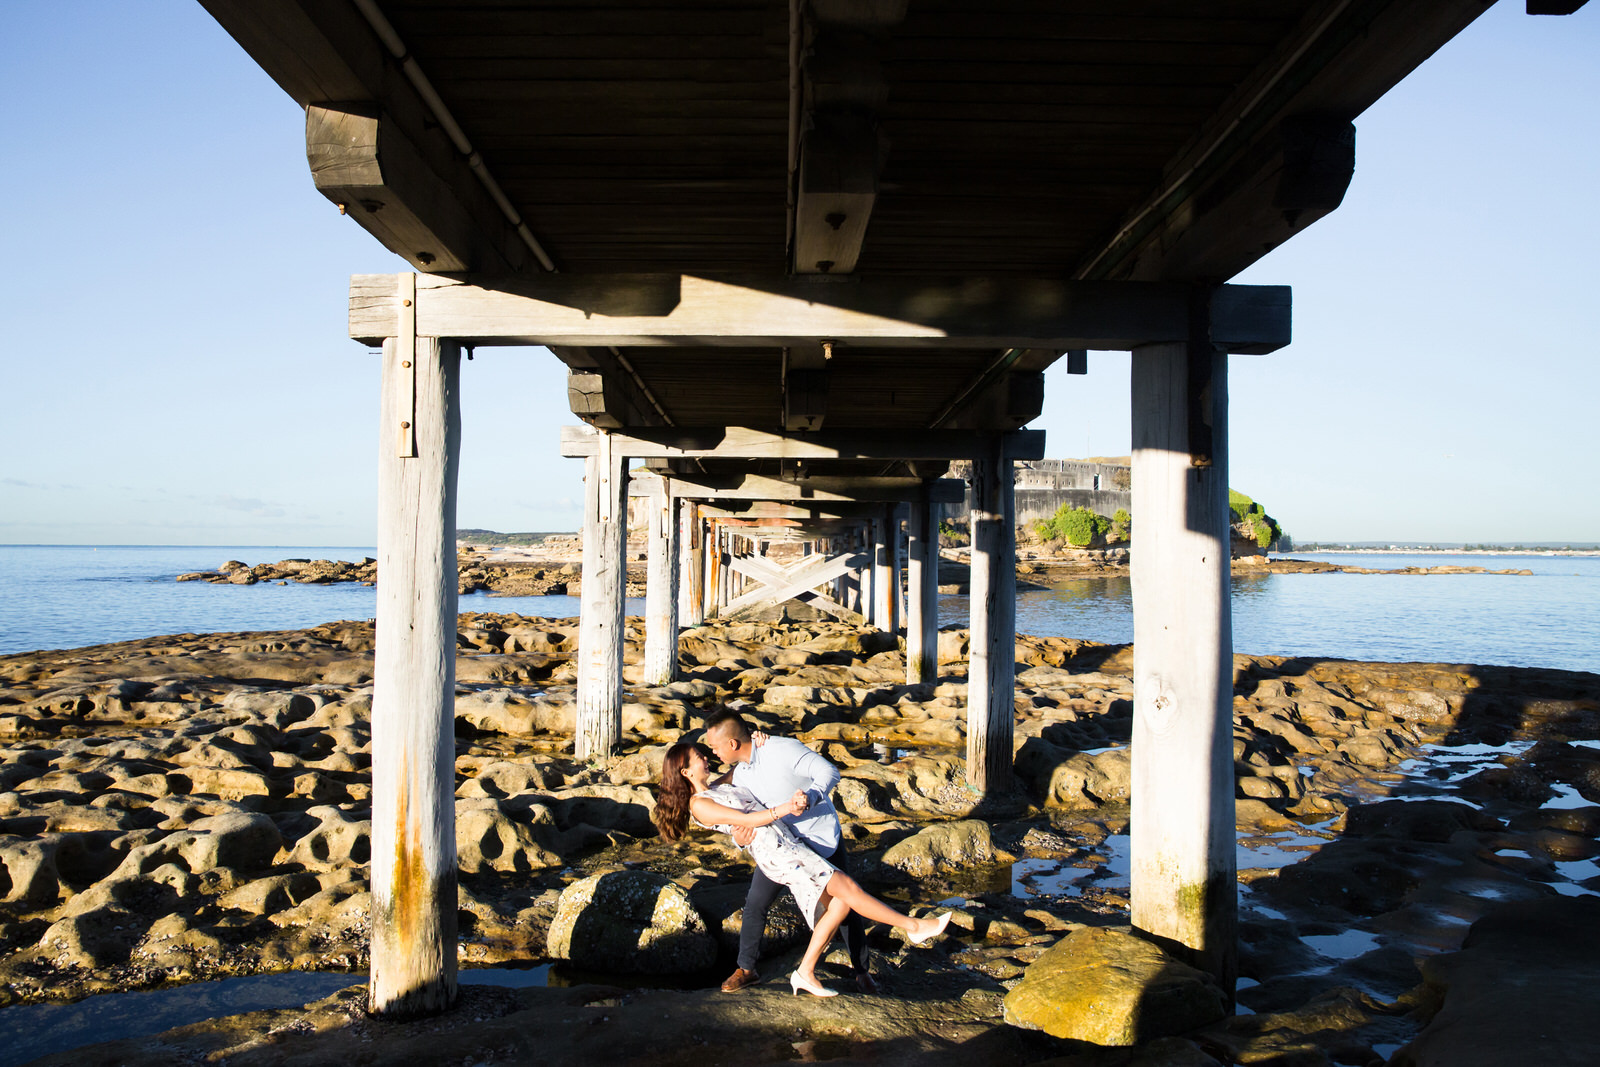 Sydney Engagement Pre-Wedding Photography Session - Jennifer Lam Photography - La Perouse (17).jpg